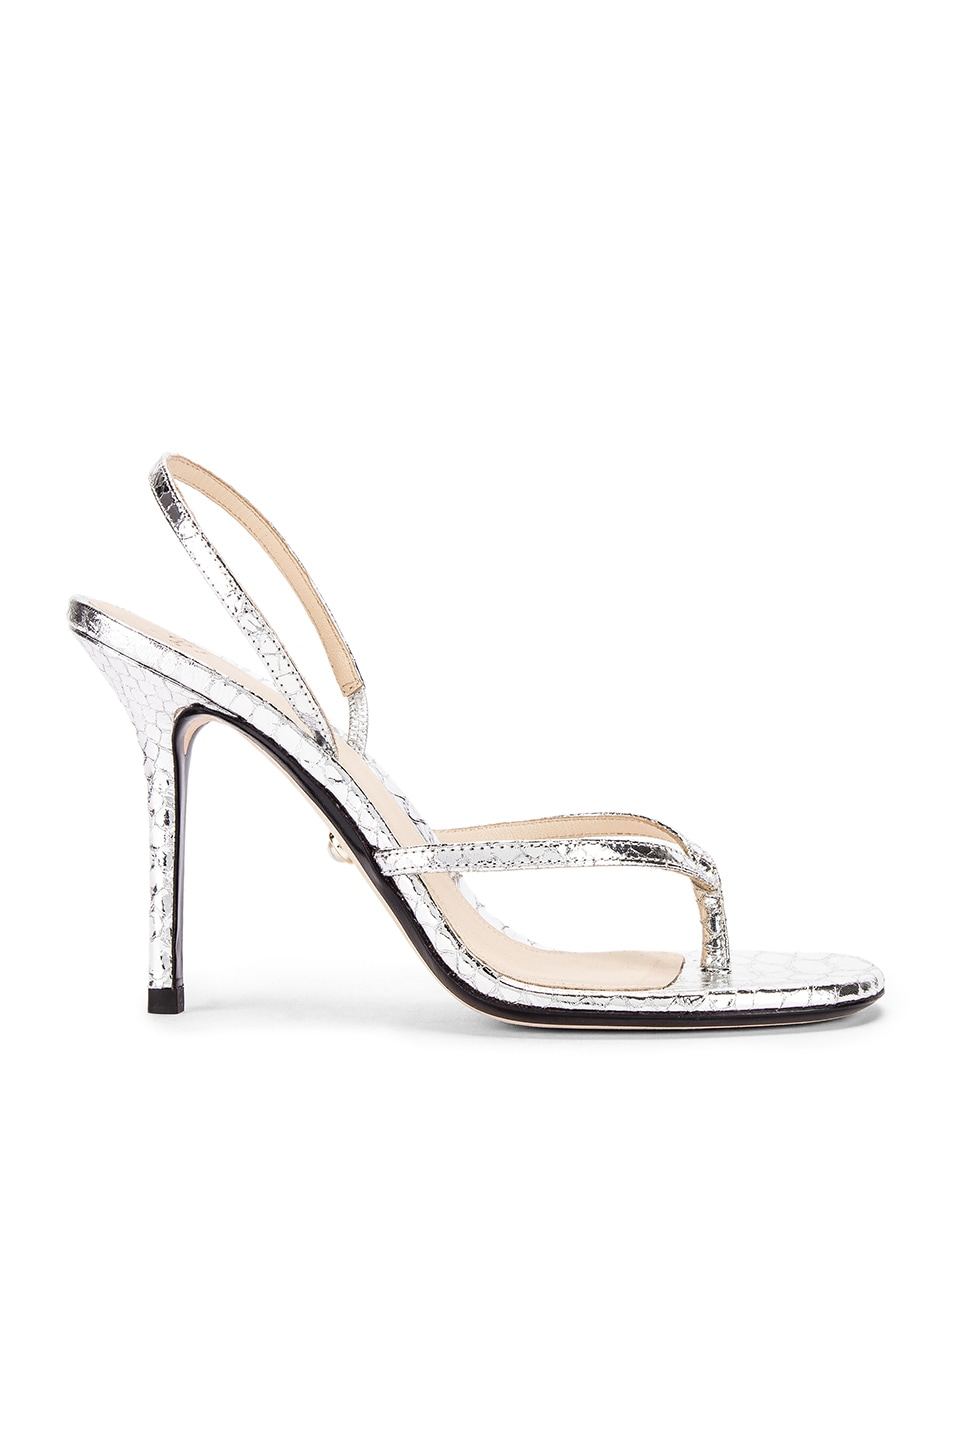 Image 1 of ALEVI Milano Ivy Sandal in Snake Silver